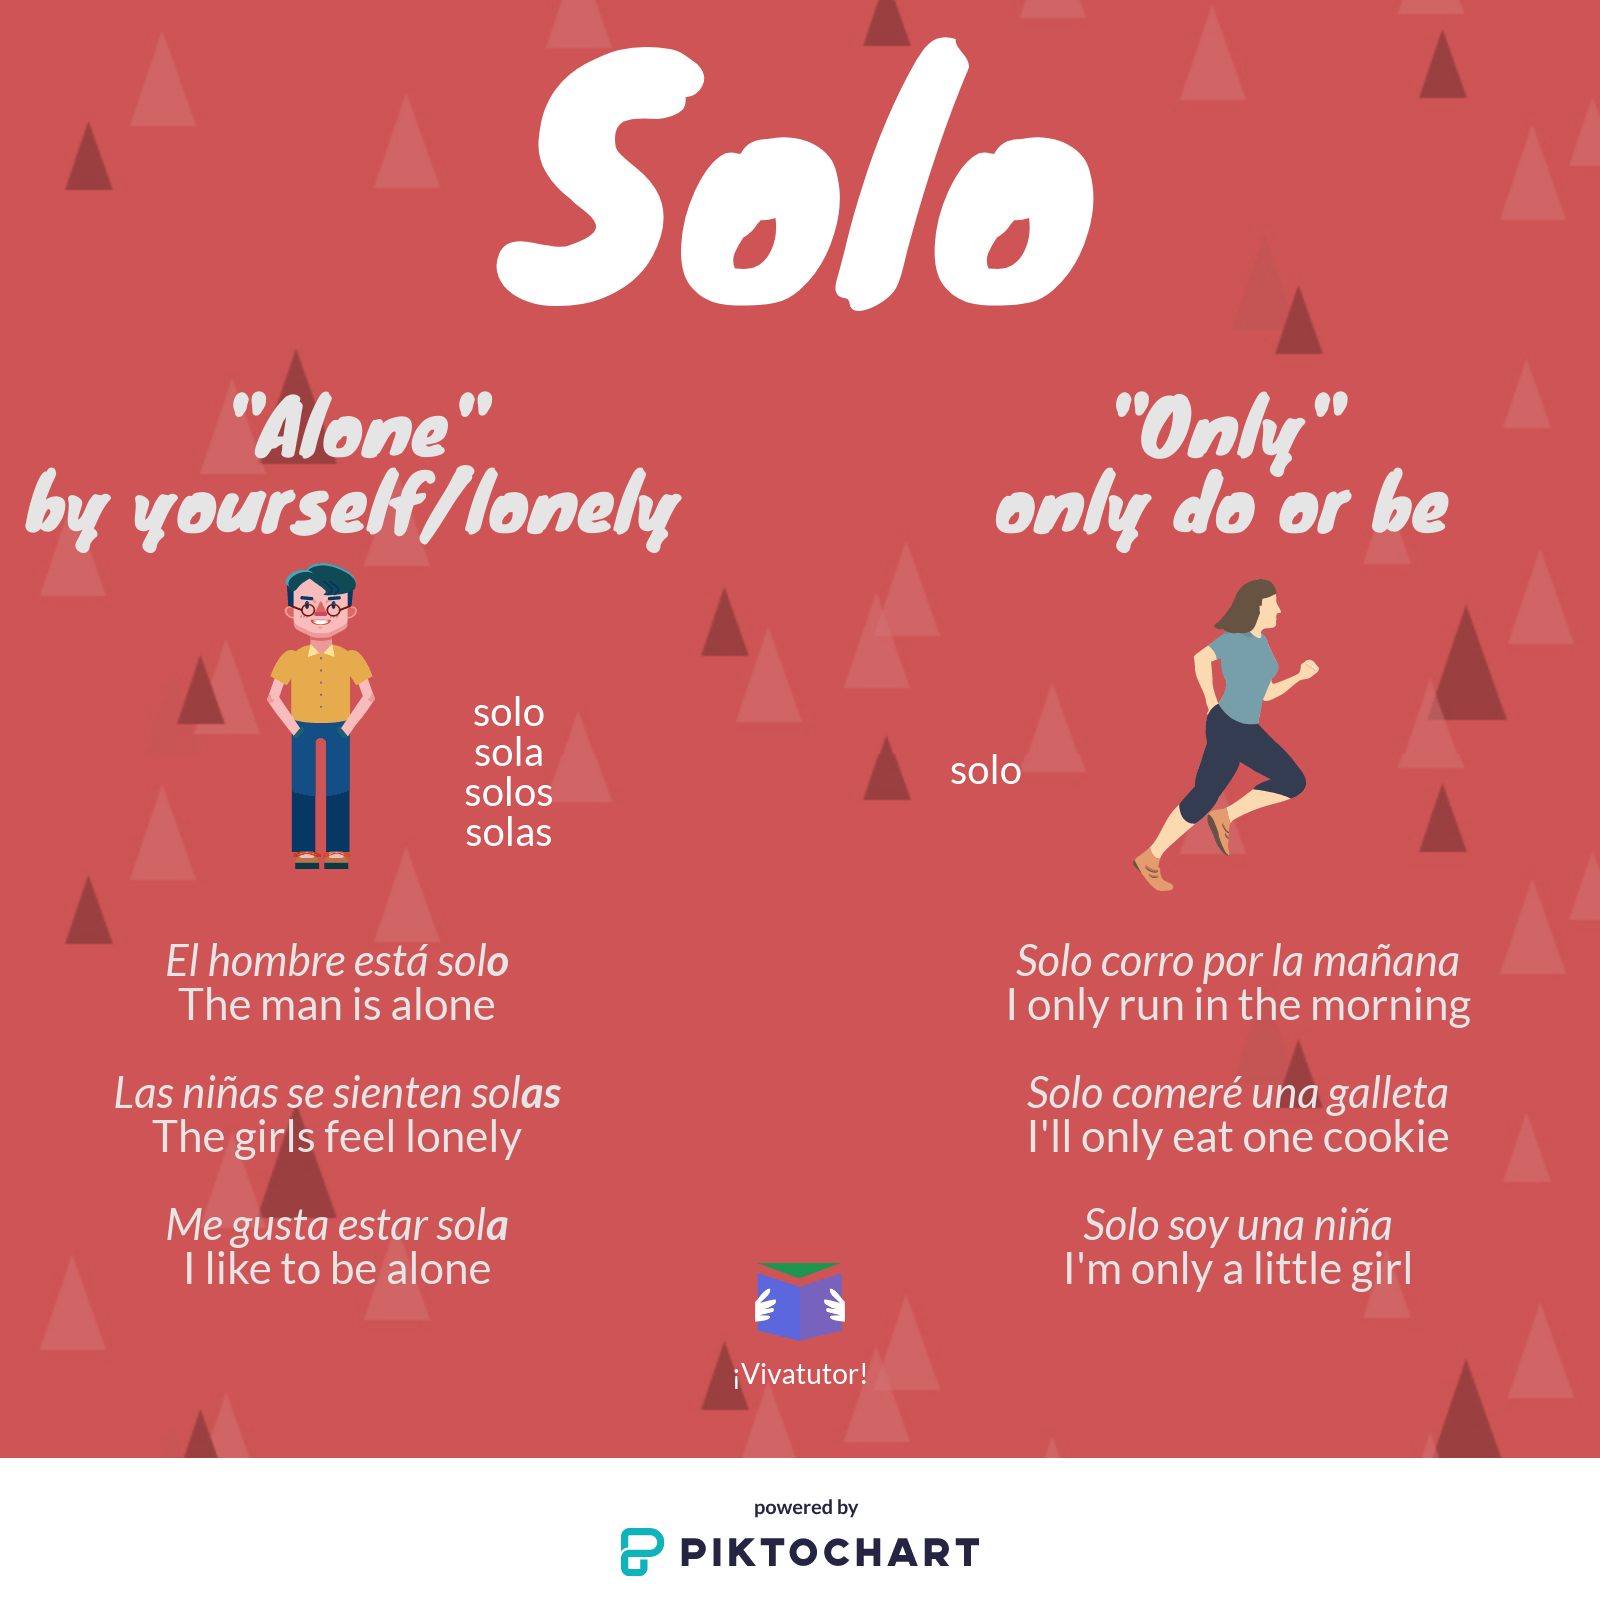 SOLO - only, alone, the only one?